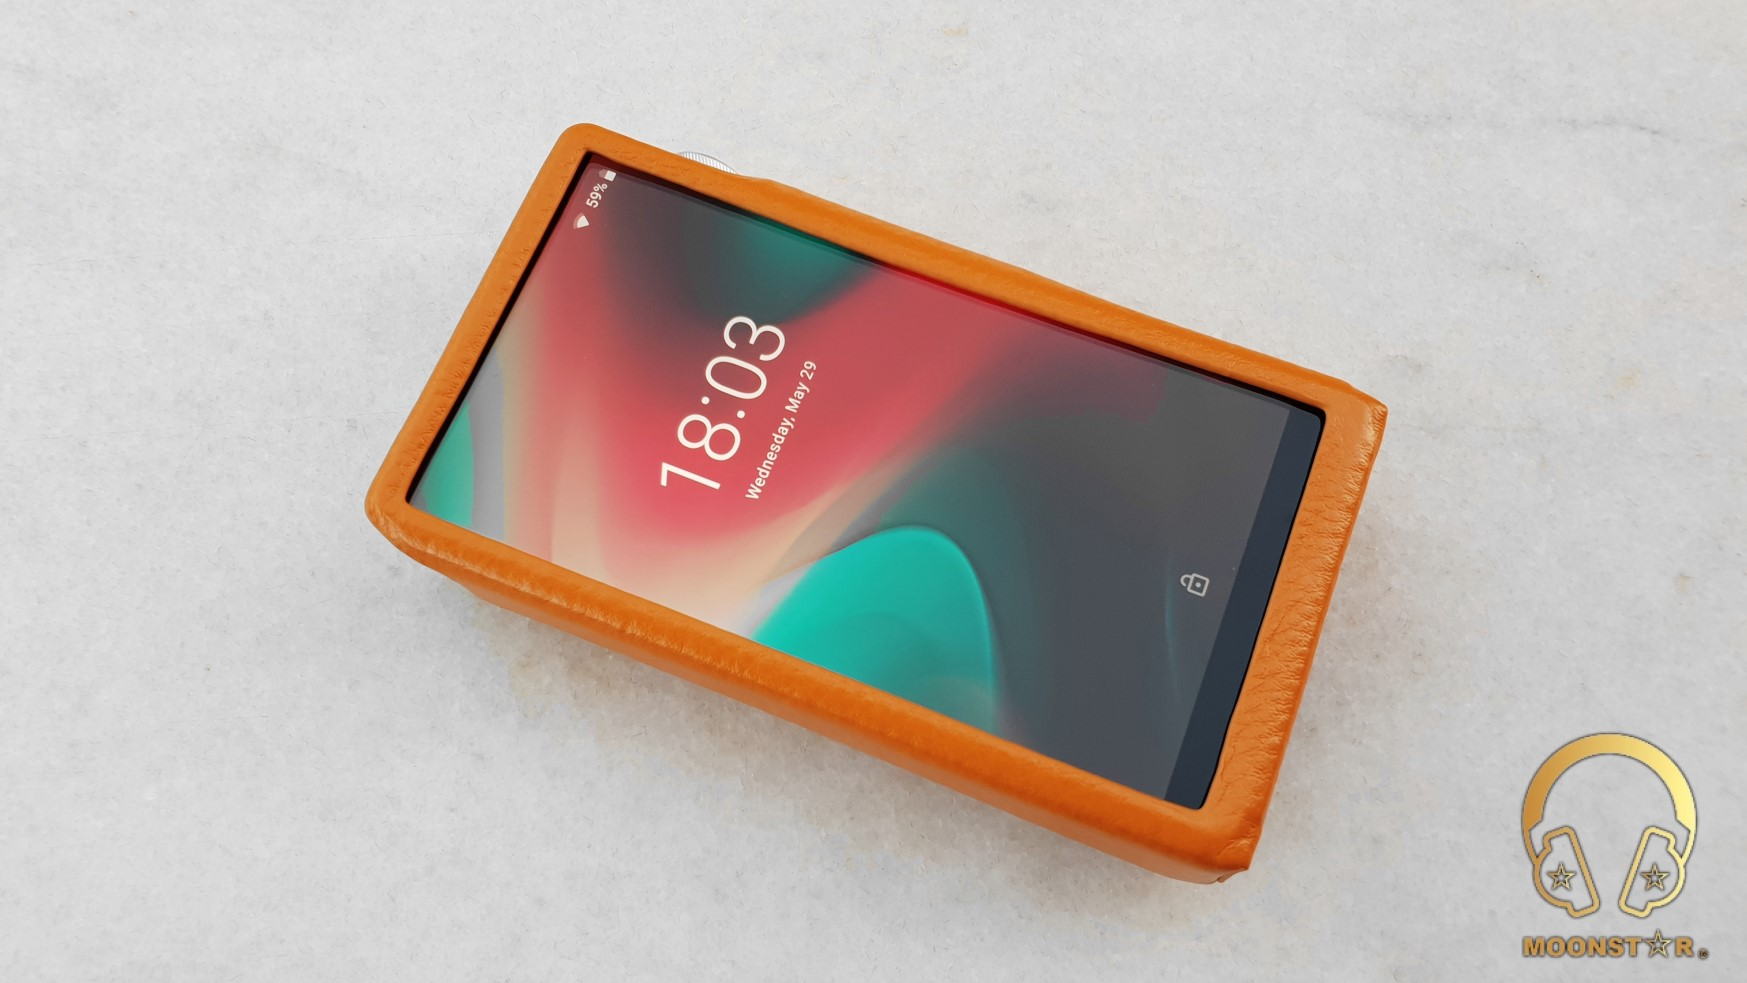 iBasso DX220 Digital Audio Player (Upcoming Review Photos)